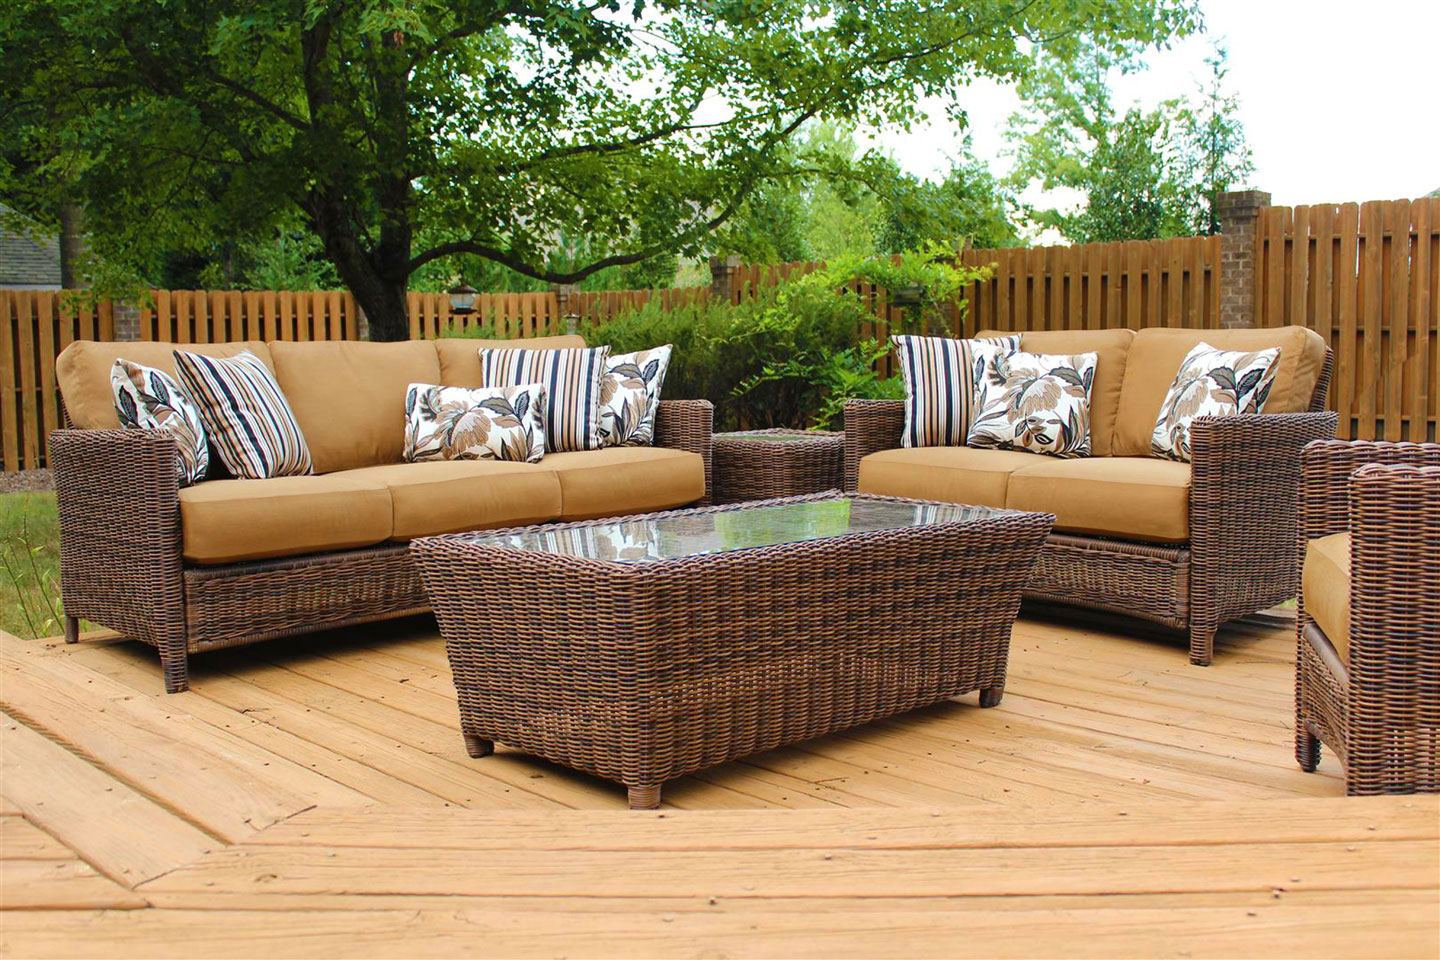 Oceana Resin Wicker Outdoor Patio Seating Group